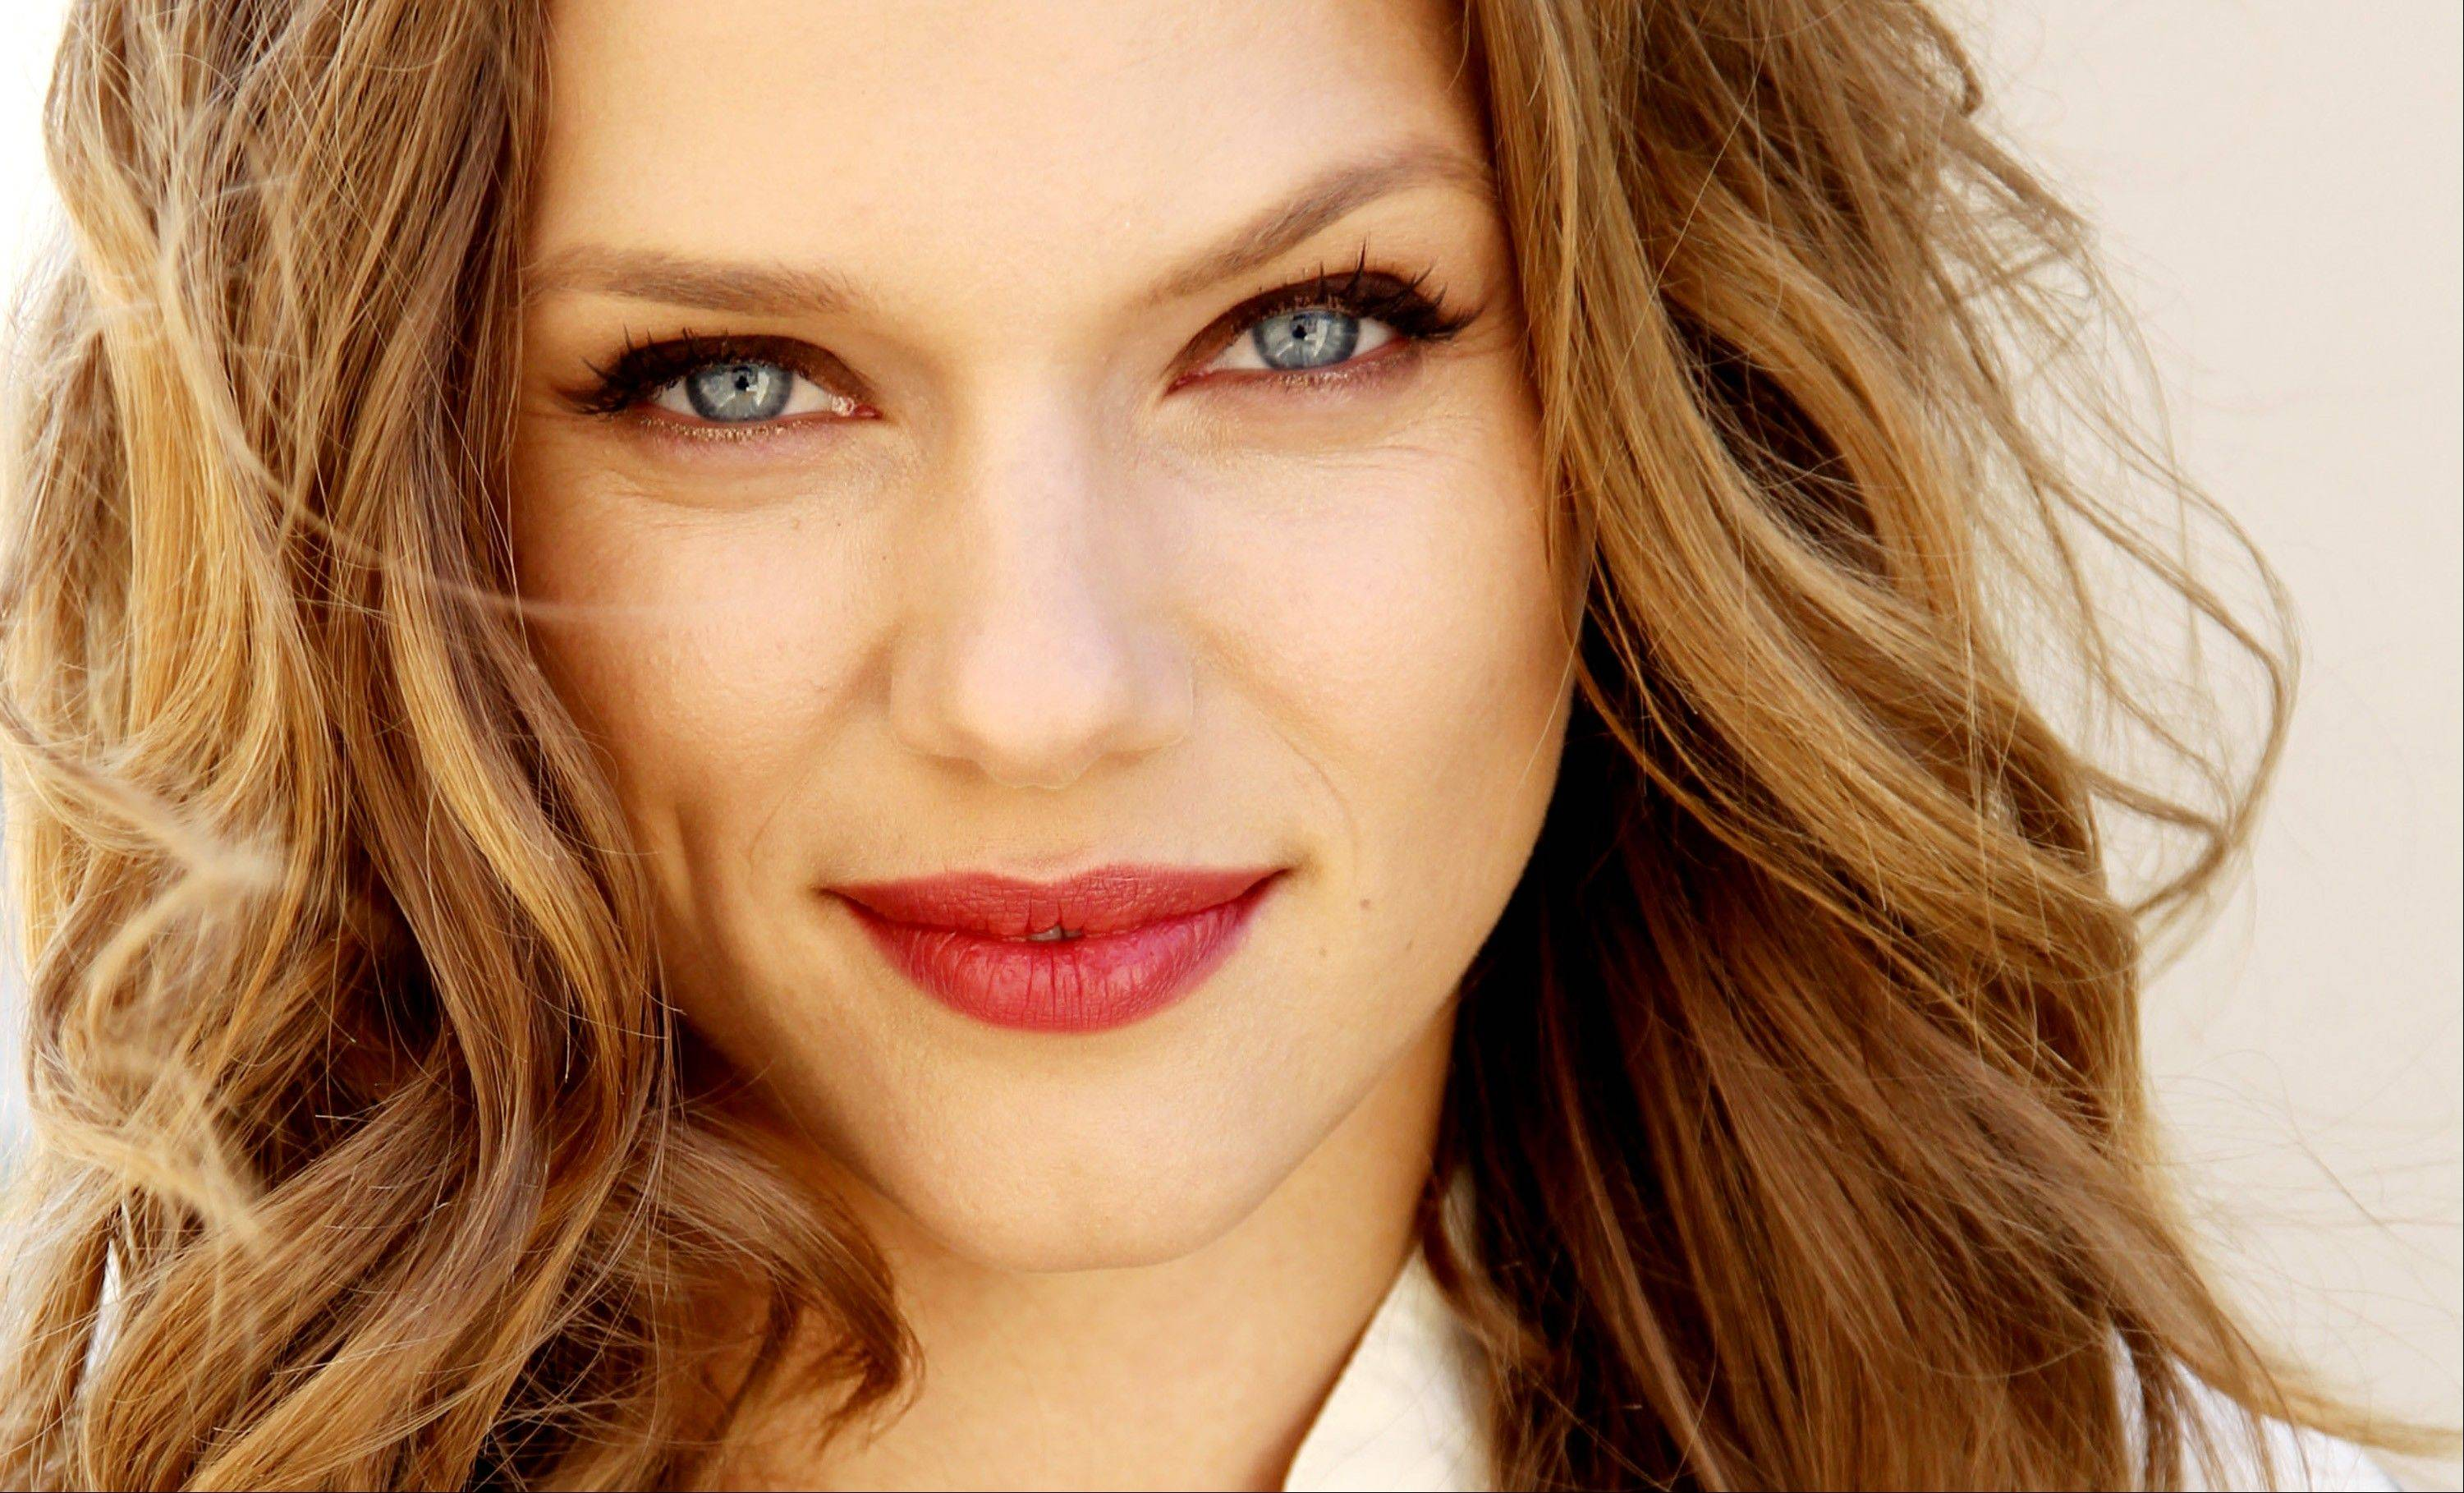 Tracy Spiridakos, who stars in the NBC series �Revolution,� airing at 9 p.m. Mondays, says she lives for stunt days on set.